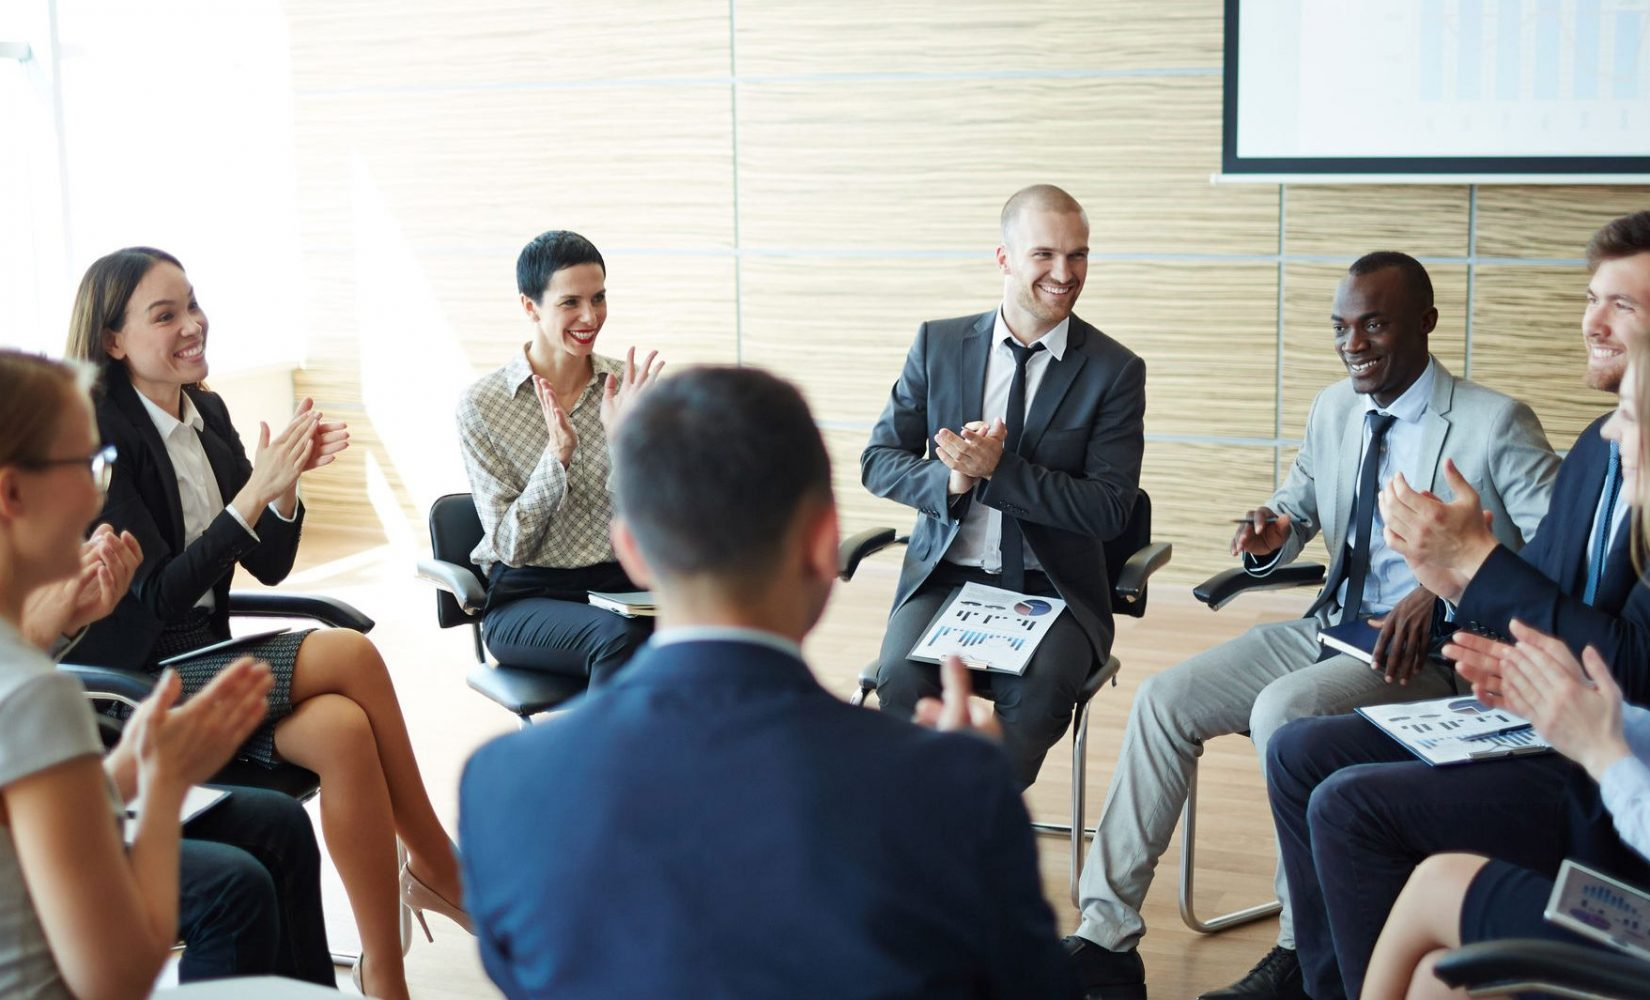 59971520 - business team applauding at a meeting